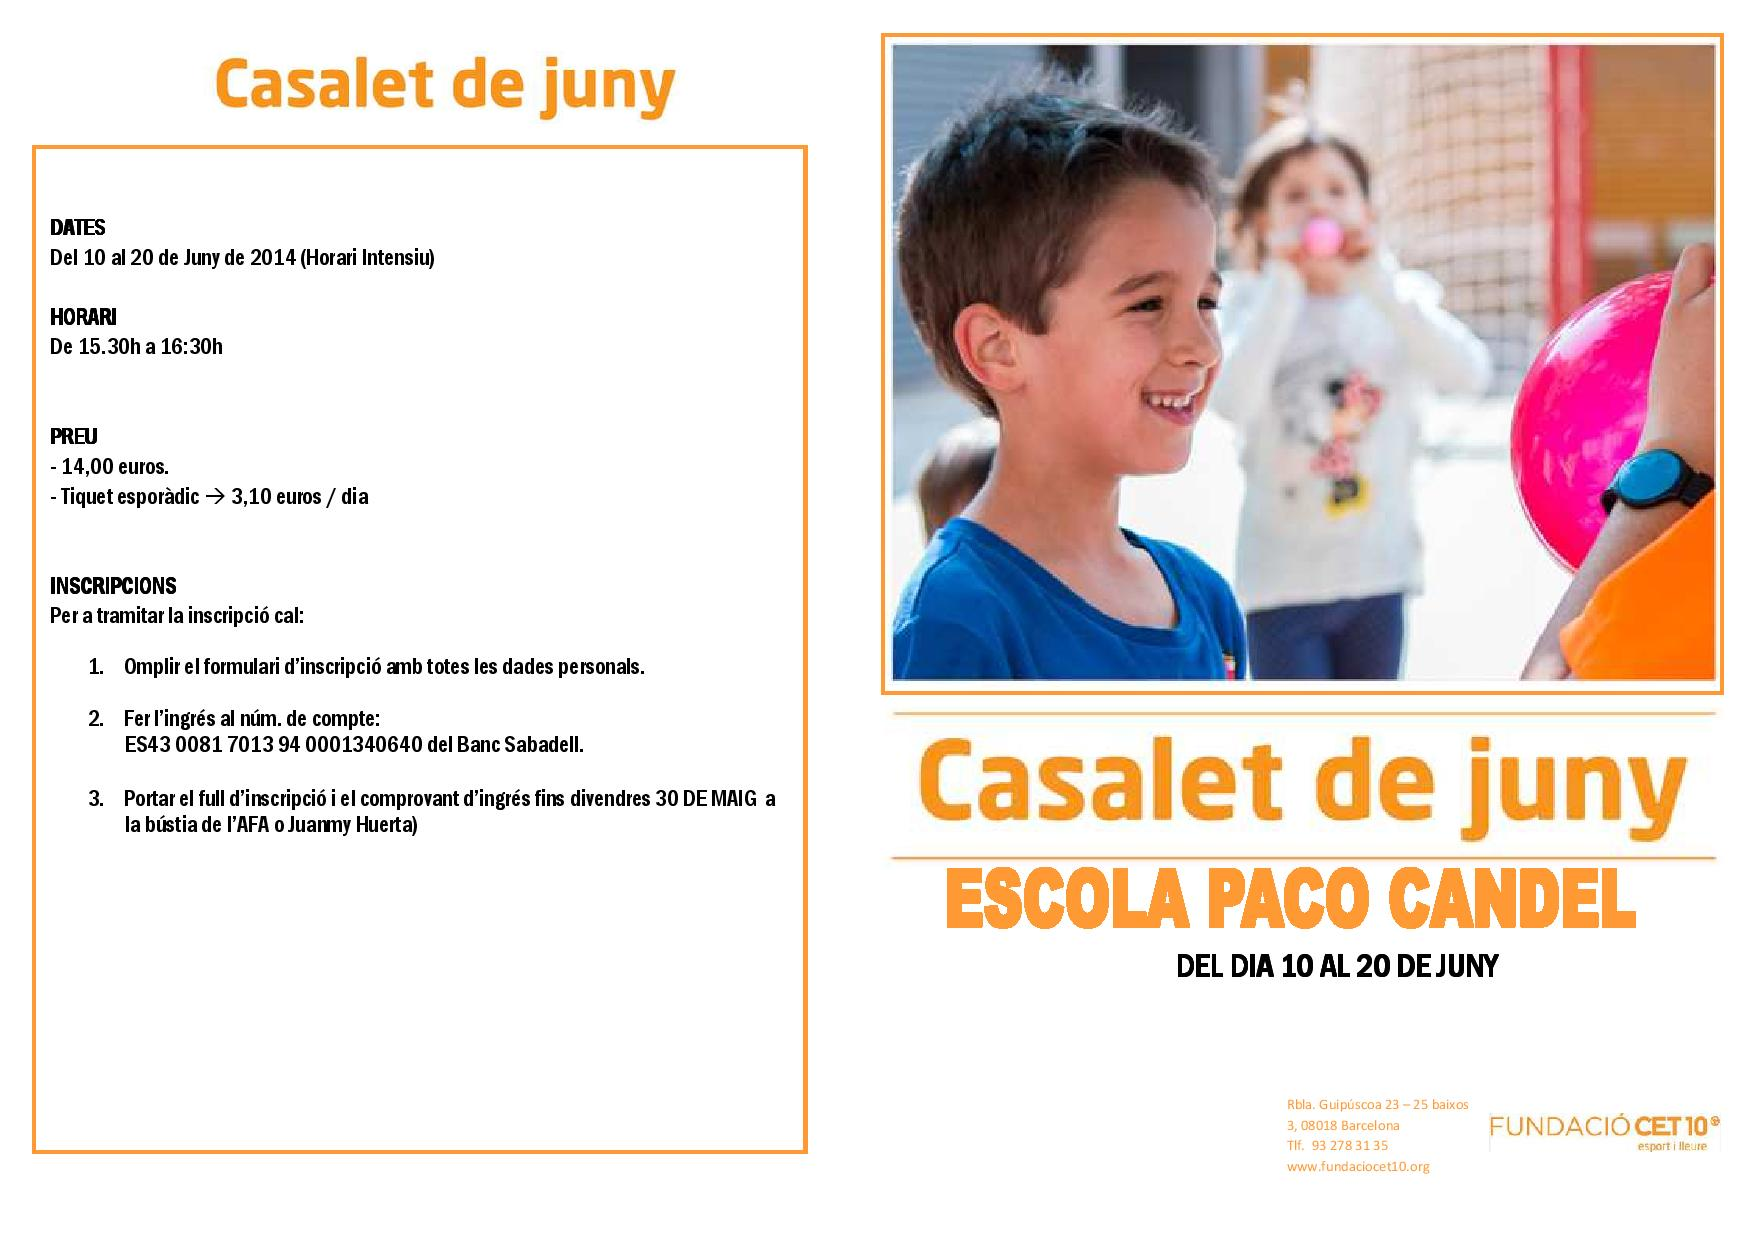 INFO-CASALET JUNY PACO CANDEL 14-page-001